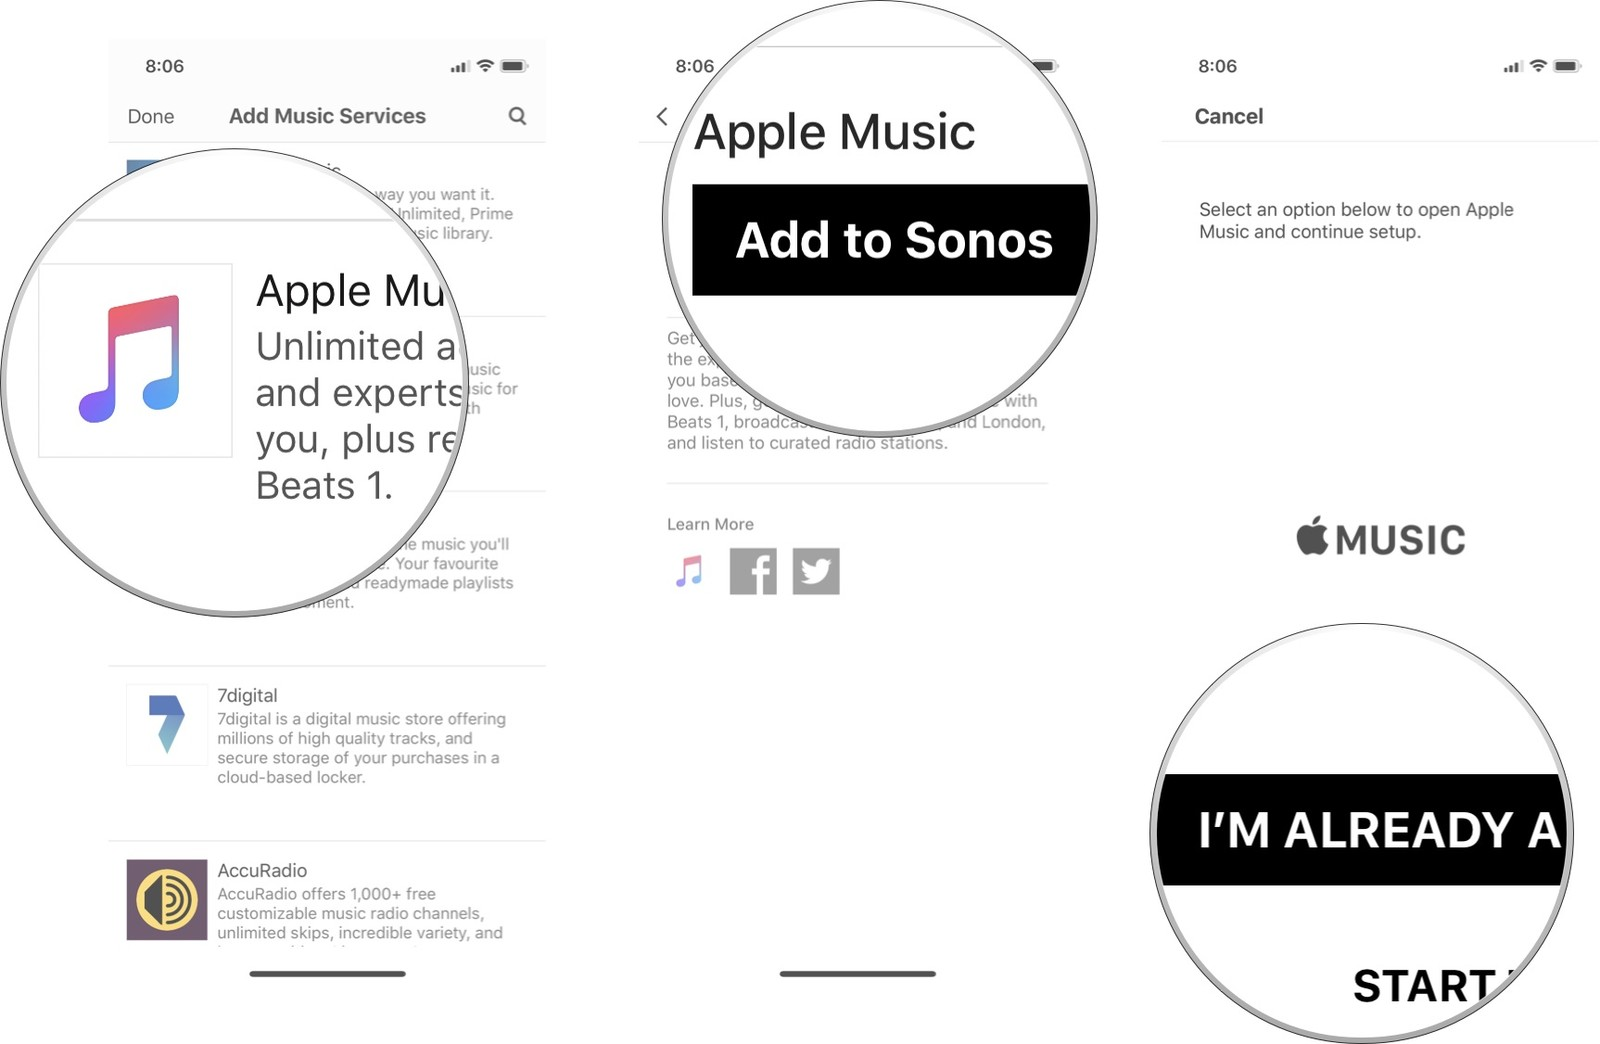 Select a music service, then tap Add to Sonos, then tap the button to connect to the service